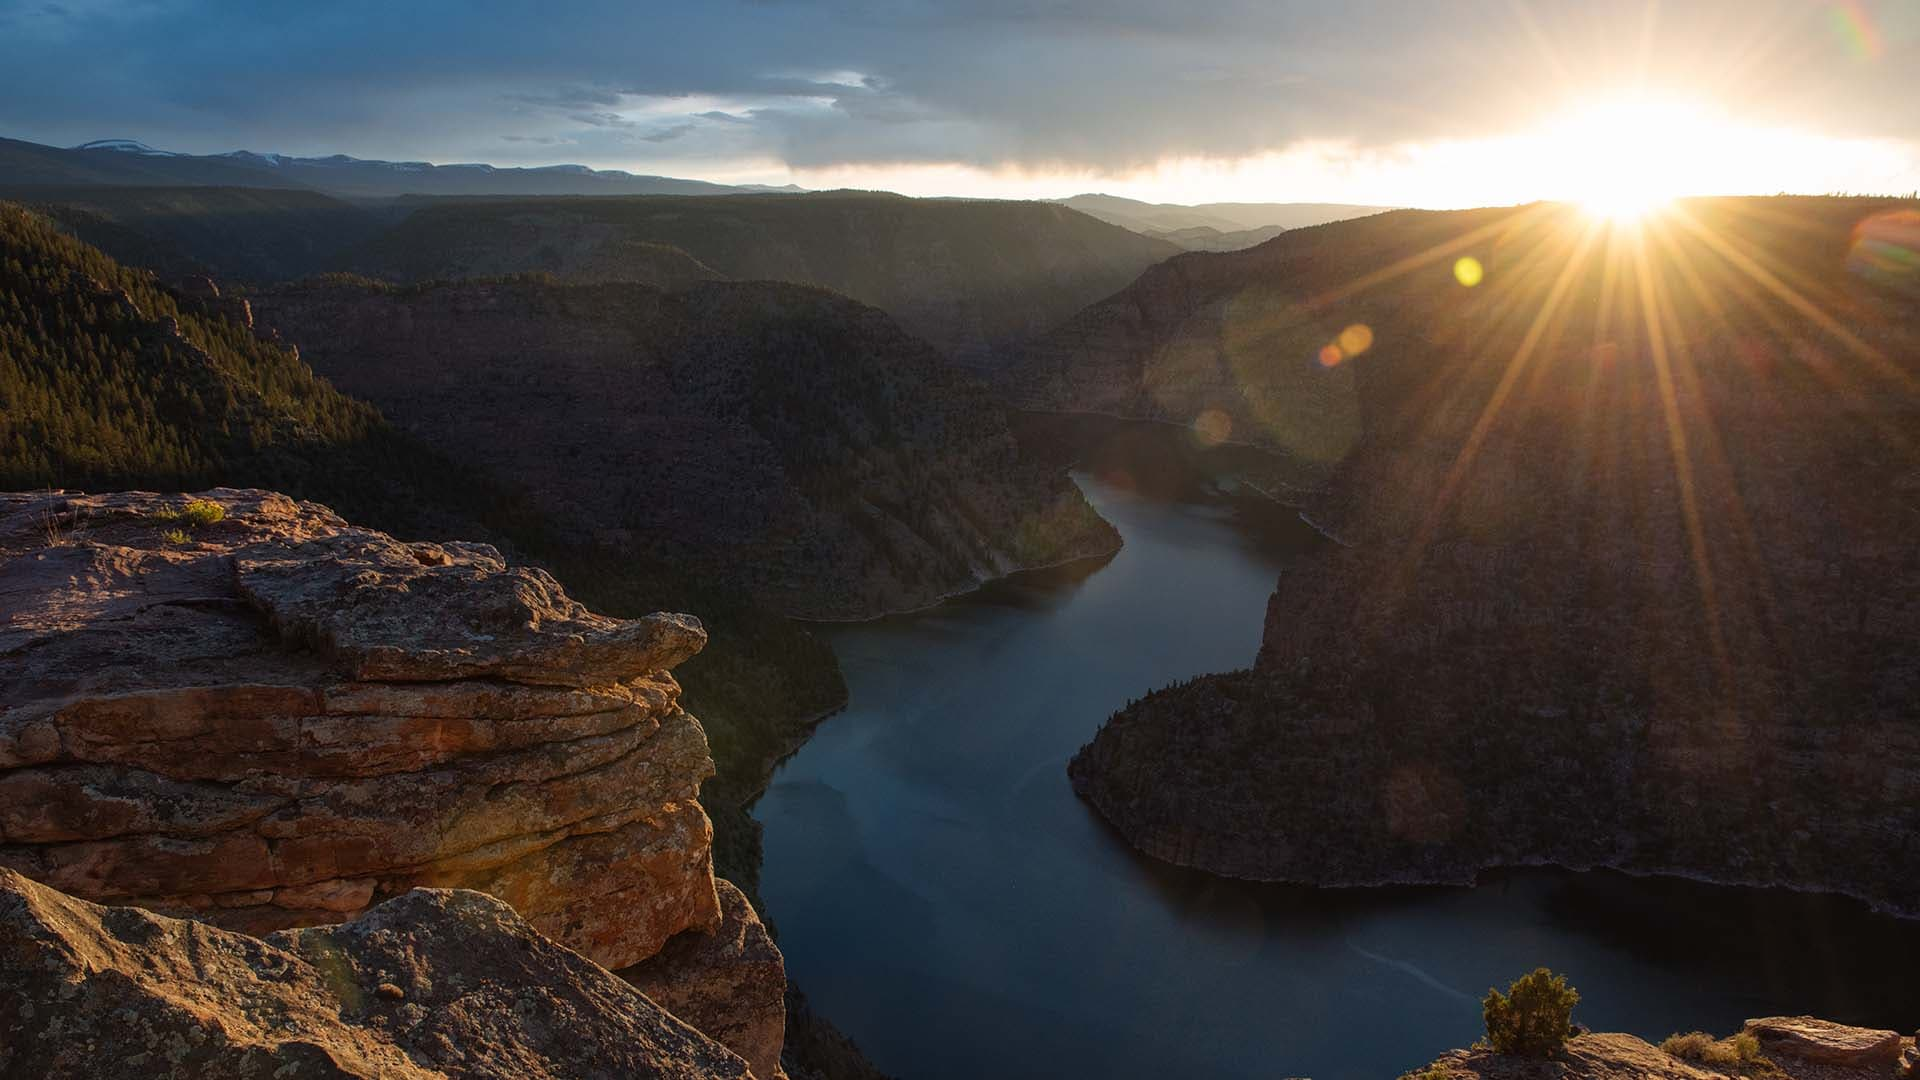 The sun sets on the Red Canyon Overlook, 1,700 feet above the Flaming Gorge Reservoir, near Dutch John, Utah.